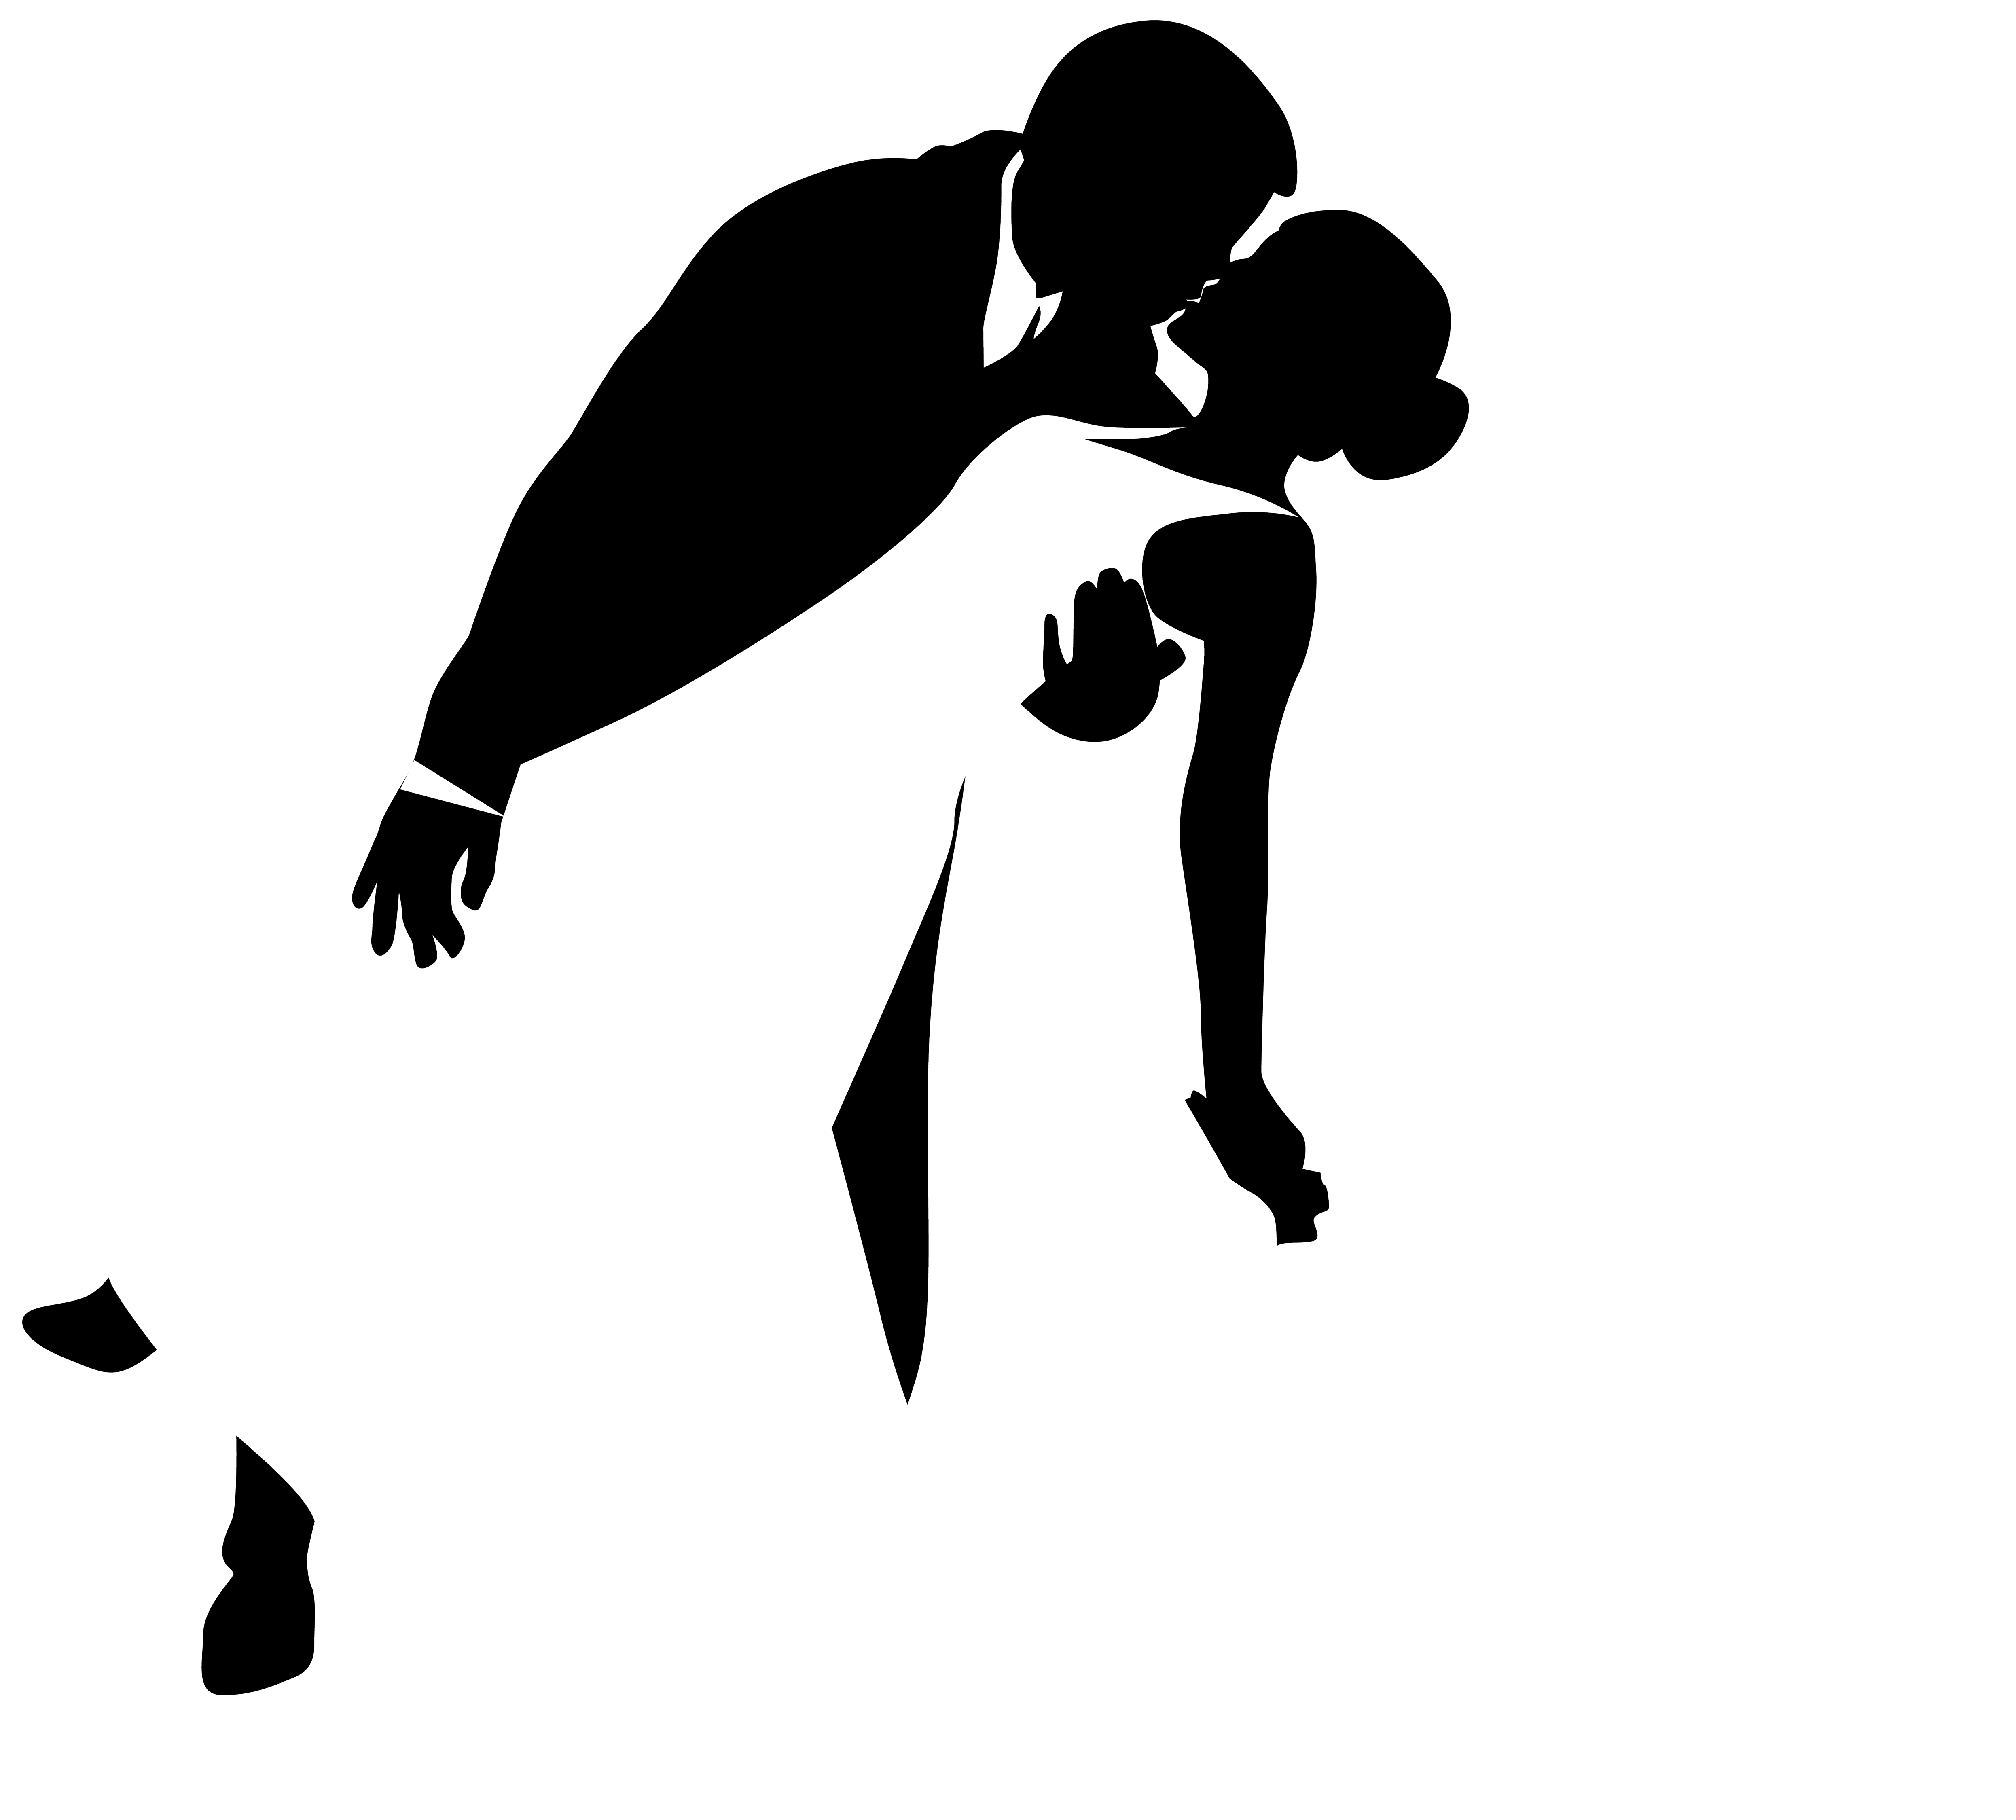 bride and groom silhouette free clip art at getdrawings com free rh getdrawings com indian wedding clipart black and white free download